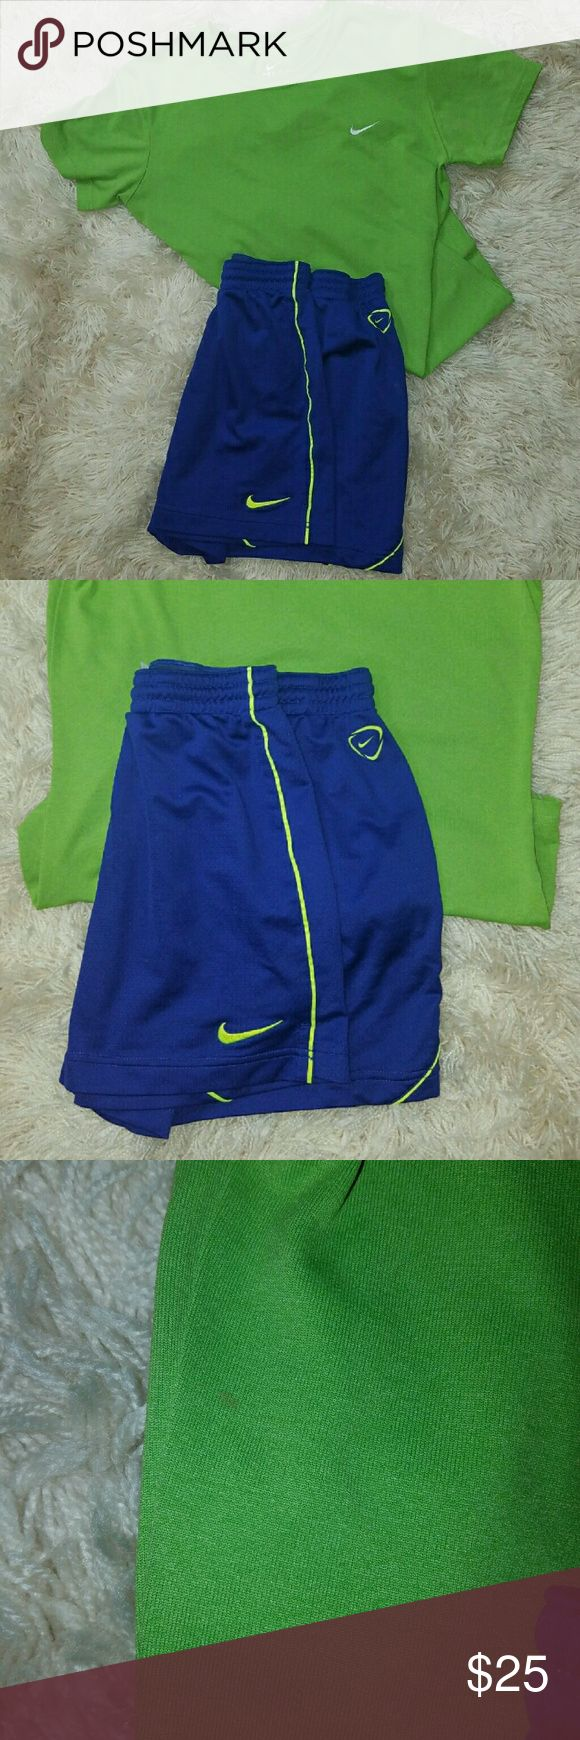 Womens Nike Athletic Bundle Tshirt / Shorts SMALL Nike tee is almost new condition has small stain that is not very noticeable (see last pic). Shorts are EUC. Nike Shorts